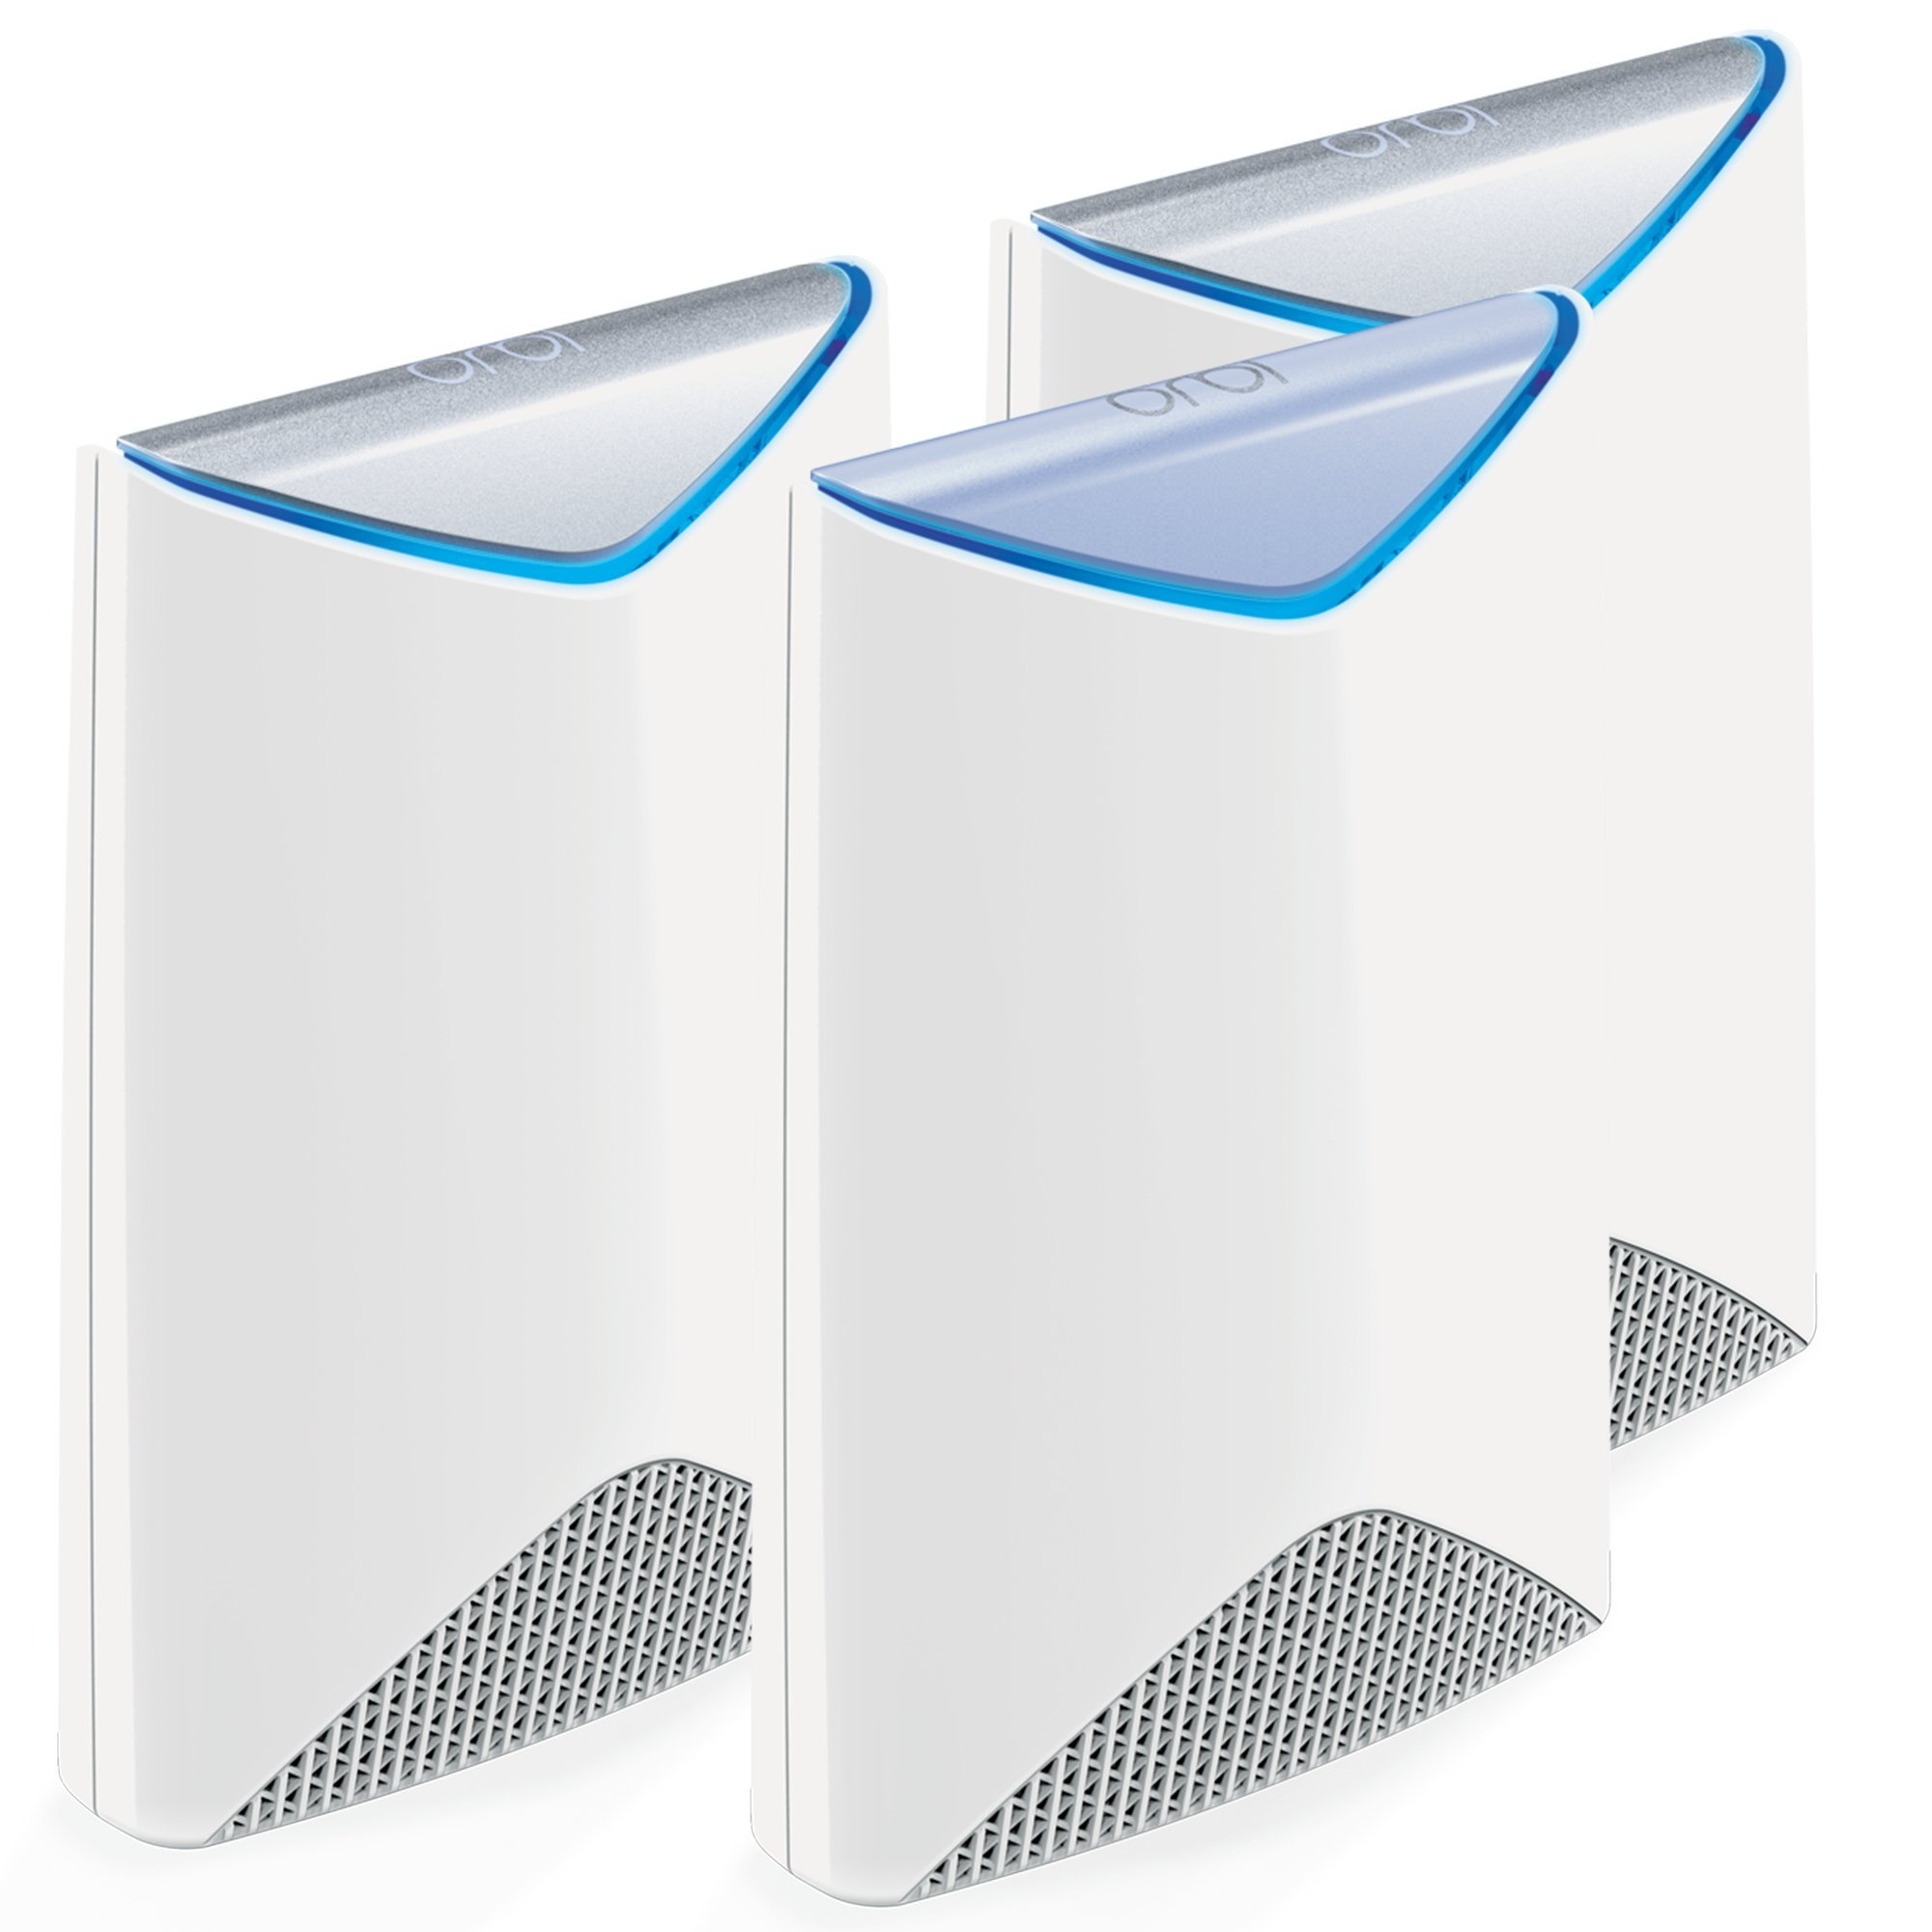 NETGEAR Orbi Pro AC3000 Business Mesh WiFi System, 3-Pack, Wireless Access Point (SRK60B03) by NETGEAR